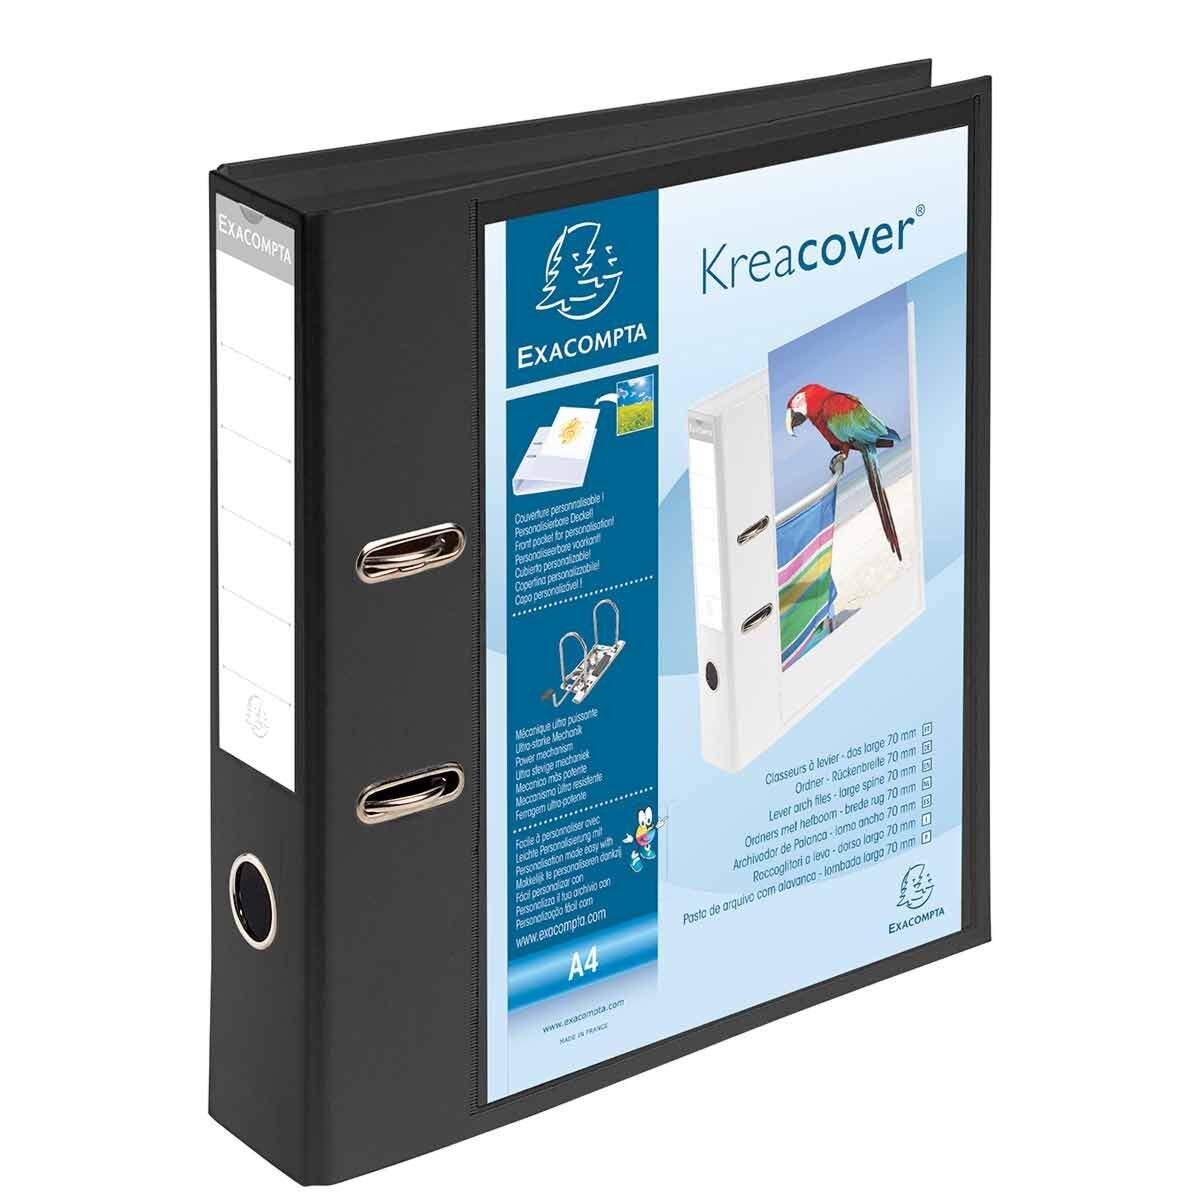 Exacompta Kreacover PremTouch Lever Arch File A4 70mm Pack of 10 Black